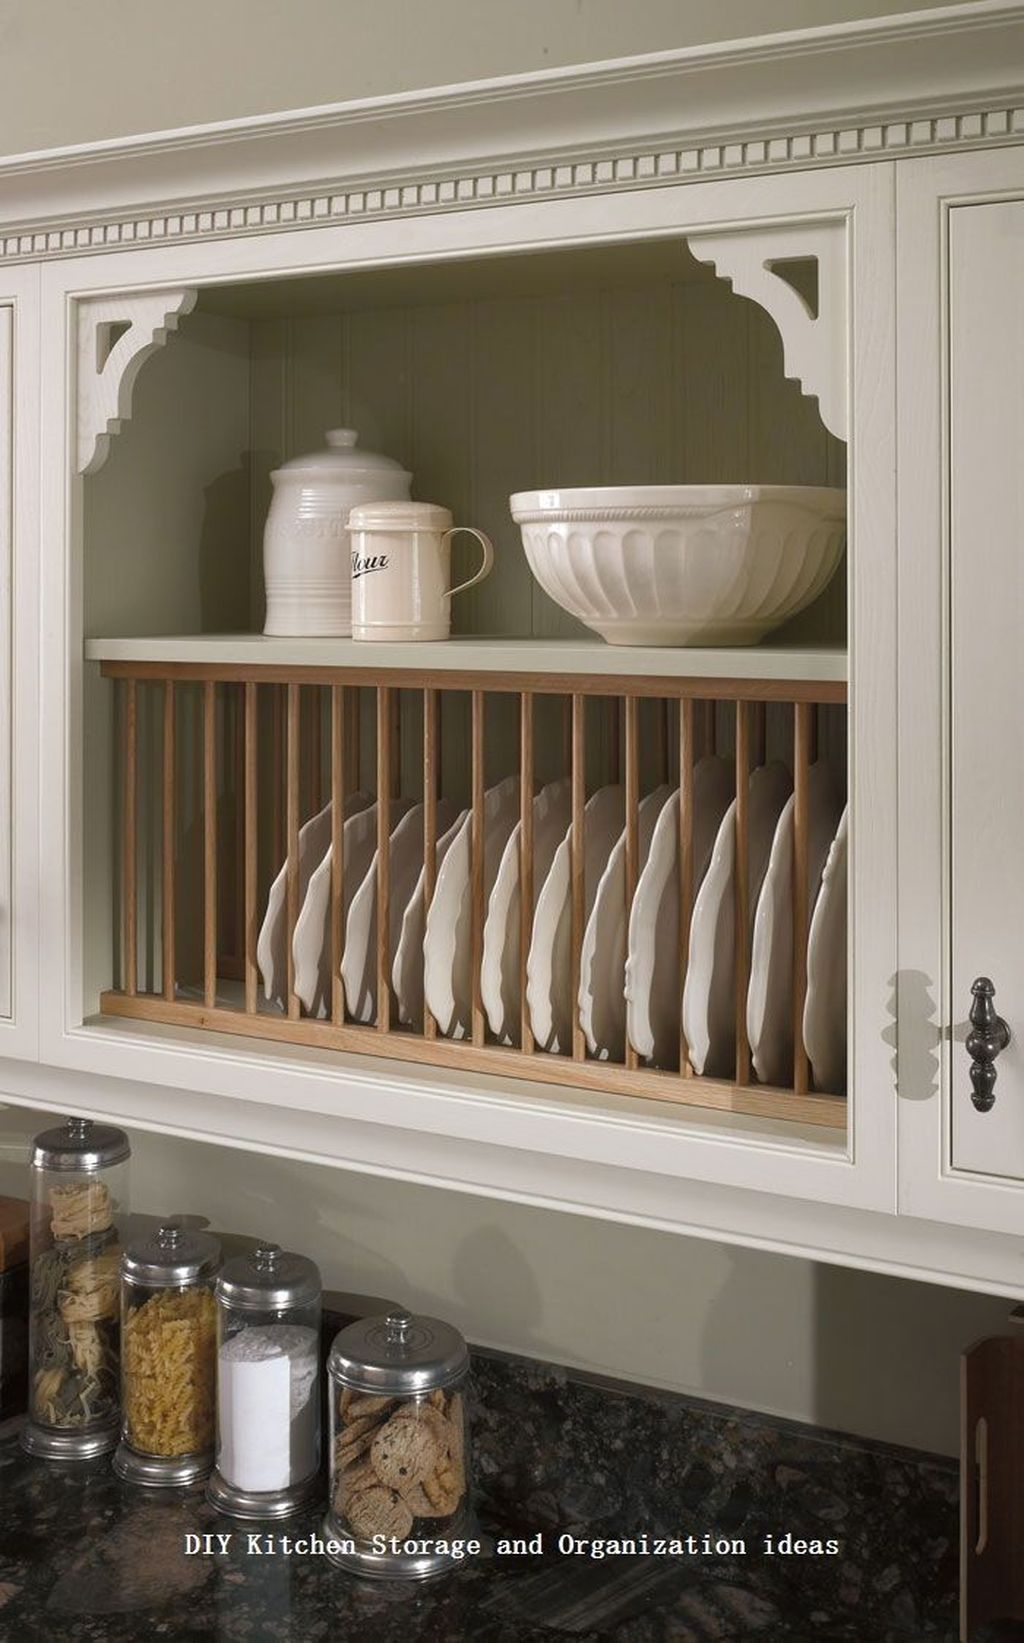 Image By Rose Eliff On La Cuccina Plate Racks In Kitchen Kitchen Remodeling Projects